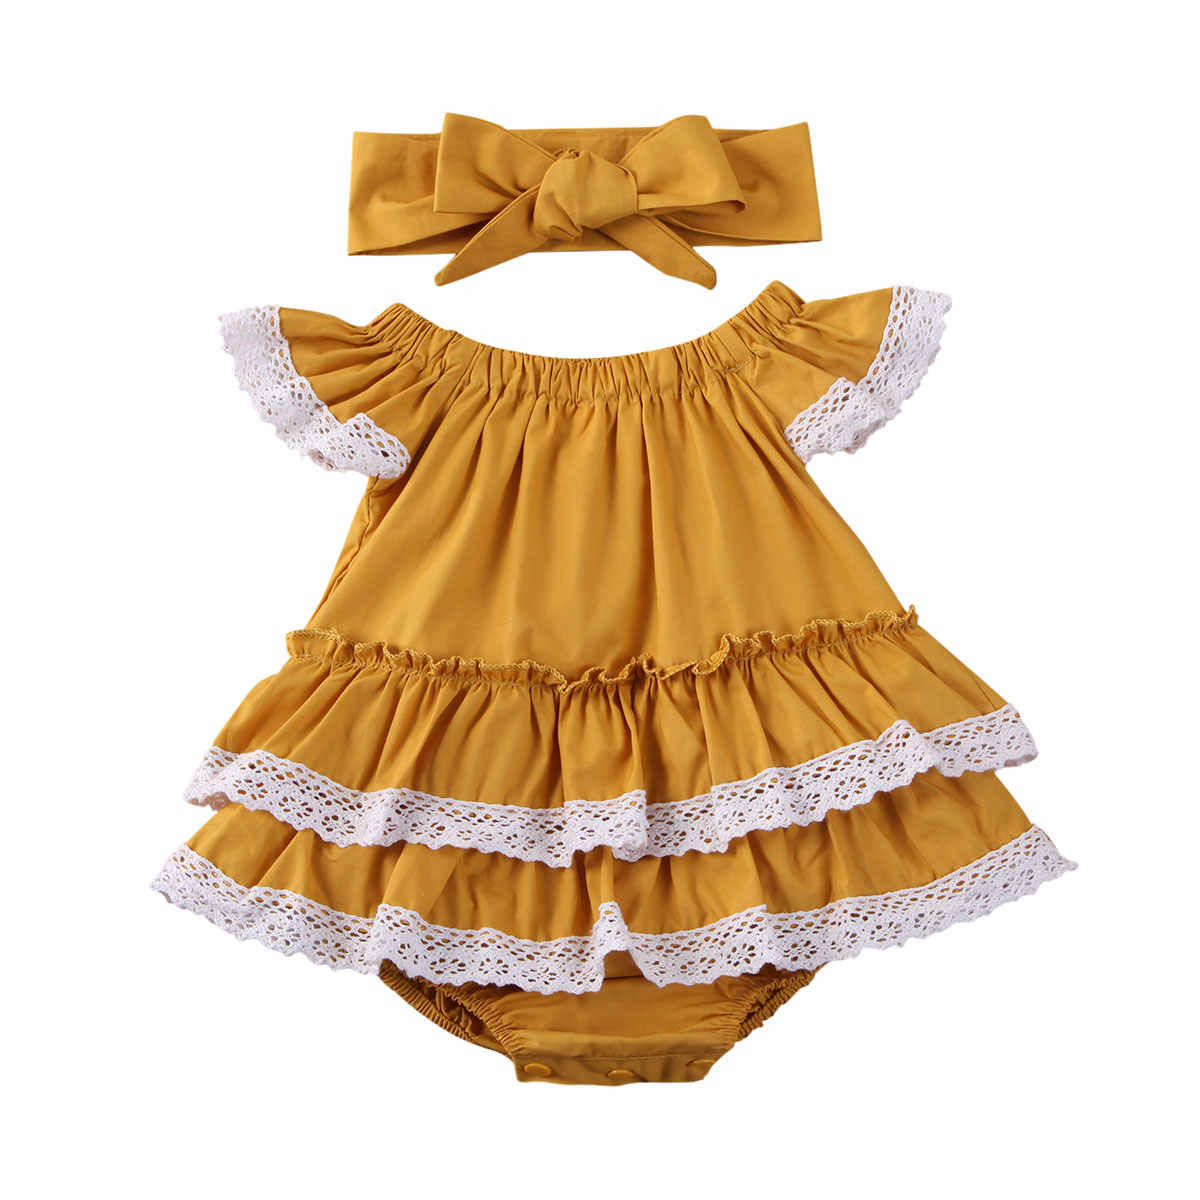 Summer Newborn Baby Girls Lace Bodysuit Ruffles Short Sleeve Yellow Jumpsuit Tops Headband Clothes 0-24M